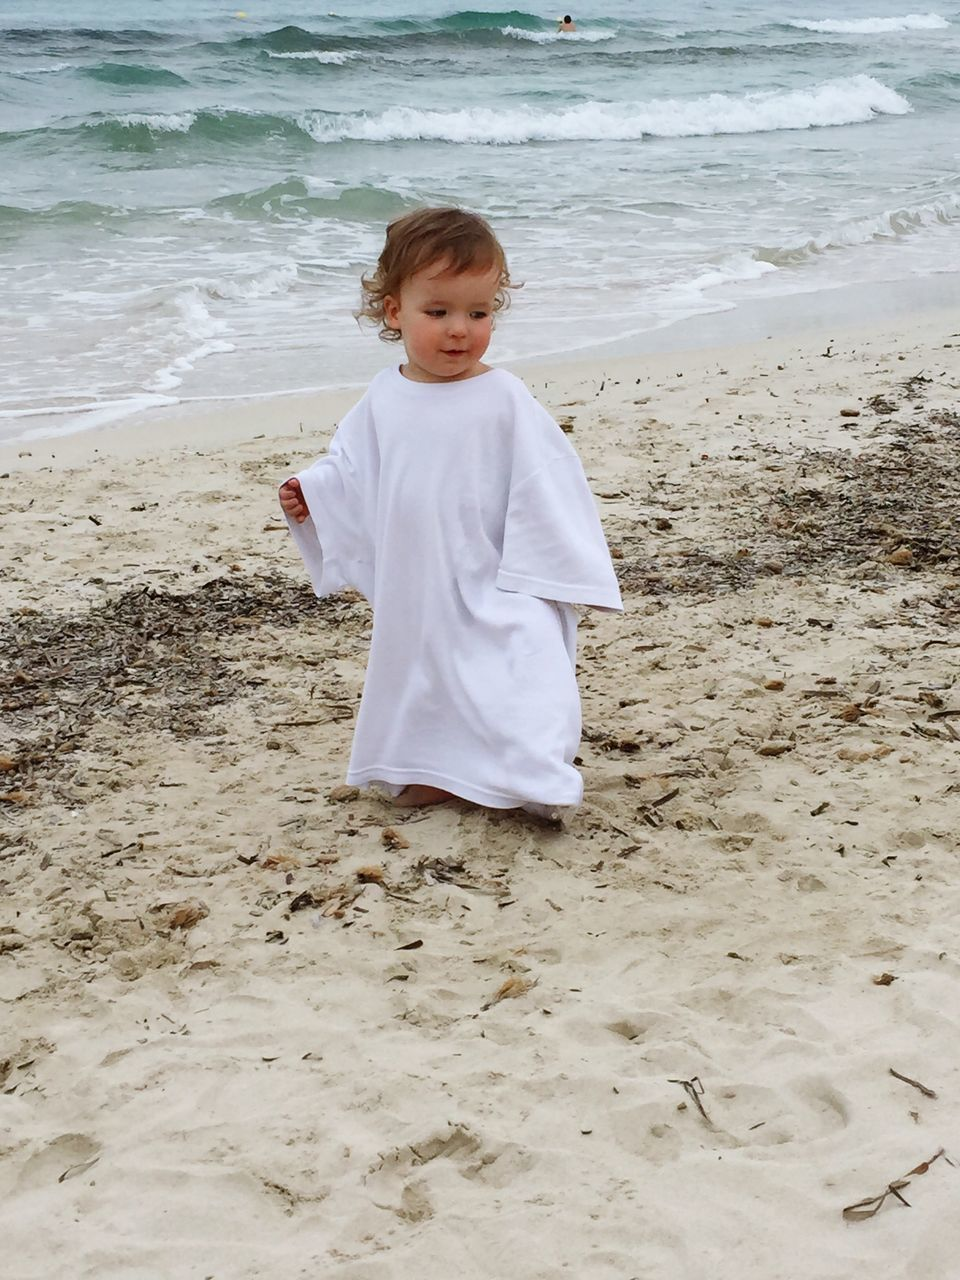 beach, sand, childhood, sea, boys, shore, one person, real people, water, wave, leisure activity, full length, standing, nature, day, lifestyles, outdoors, vacations, one boy only, sand pail and shovel, people